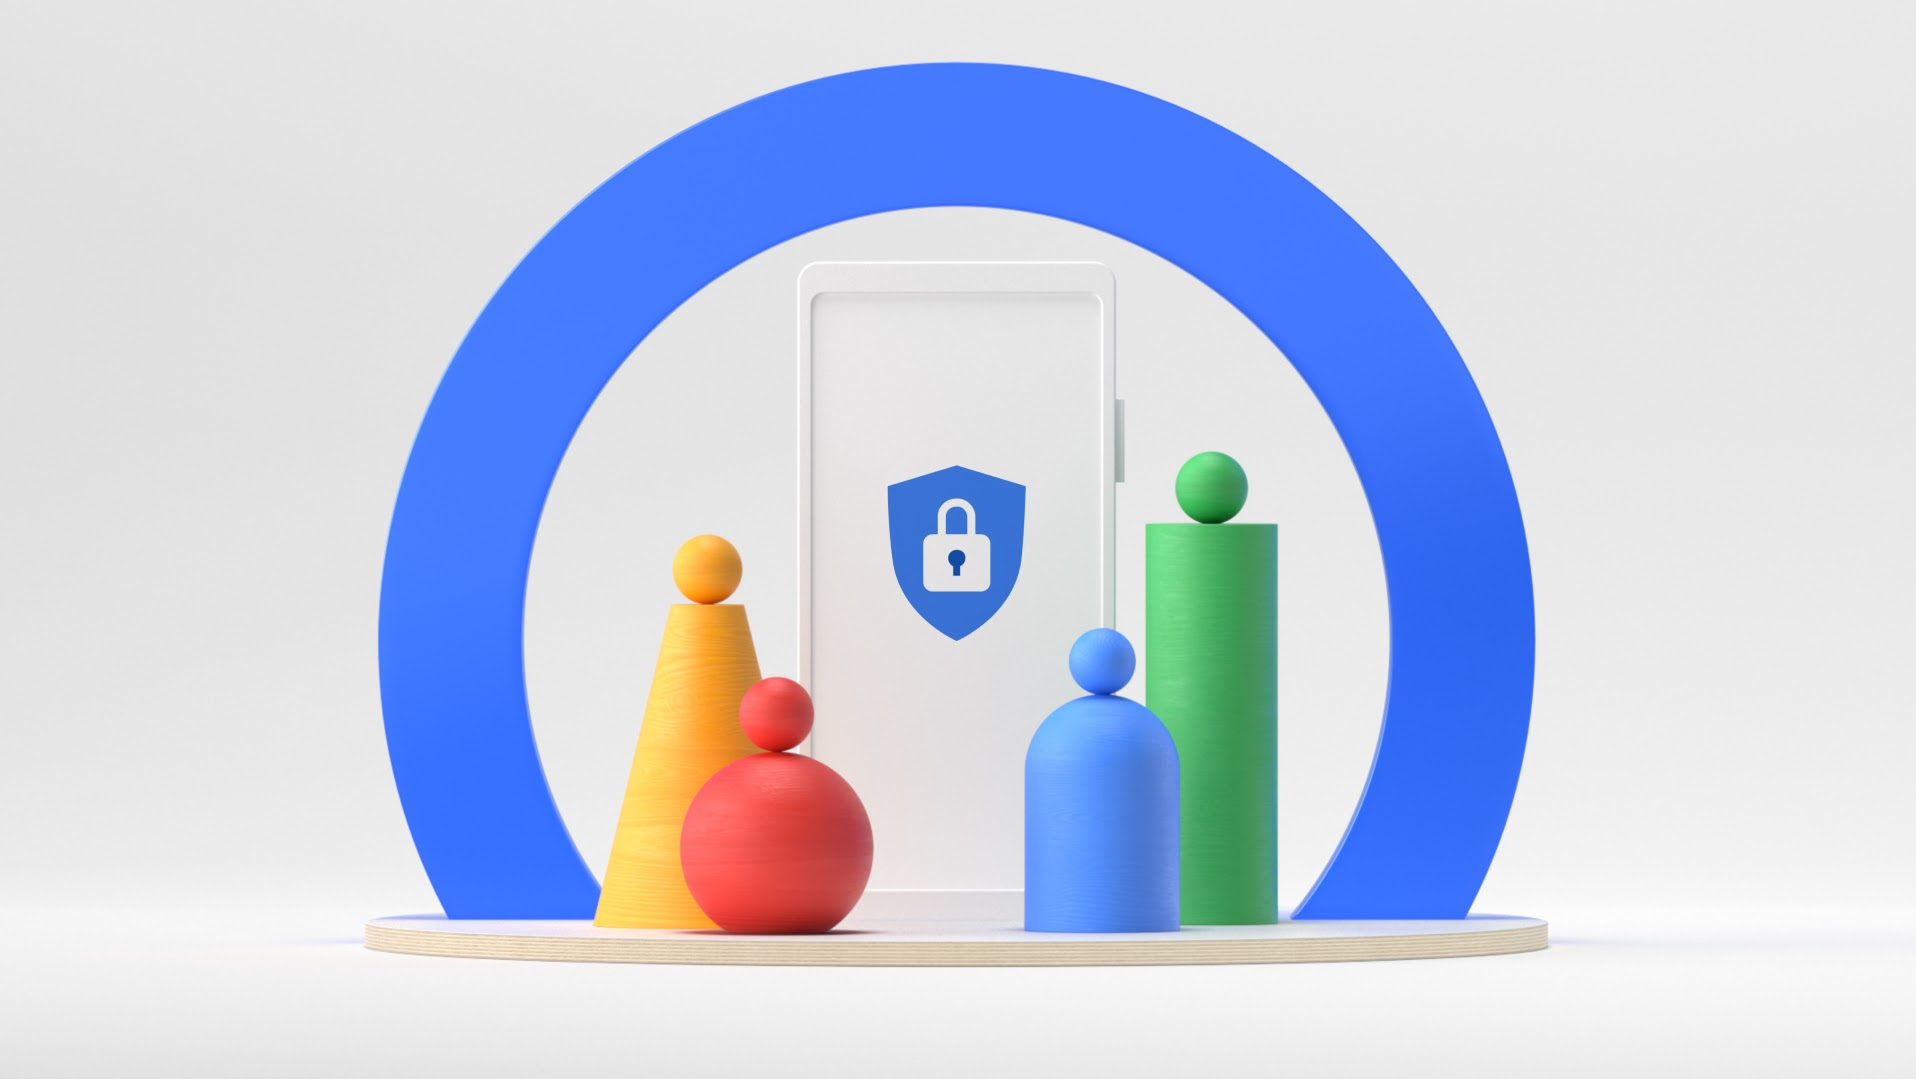 A playable video about Google's Advance Protection Program